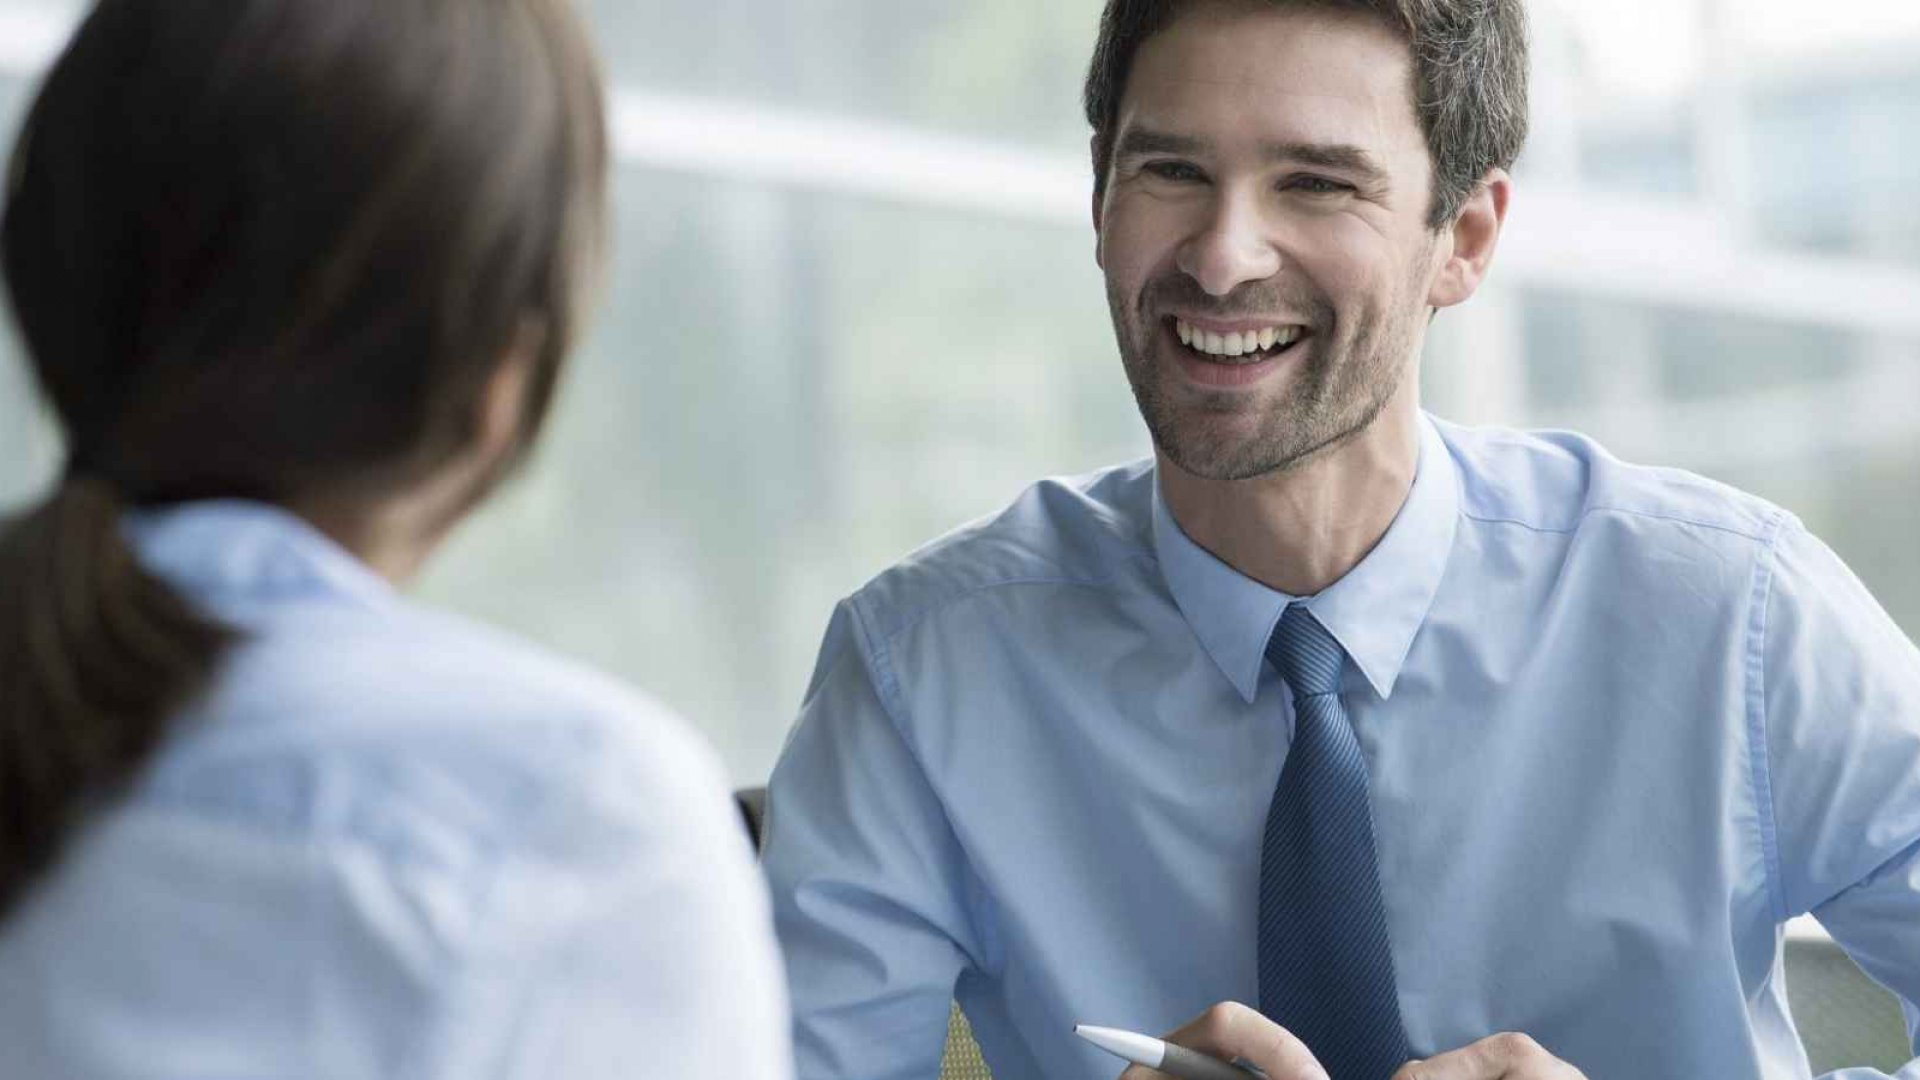 Dramatically Improve Your Listening Skills in 5 Simple Steps